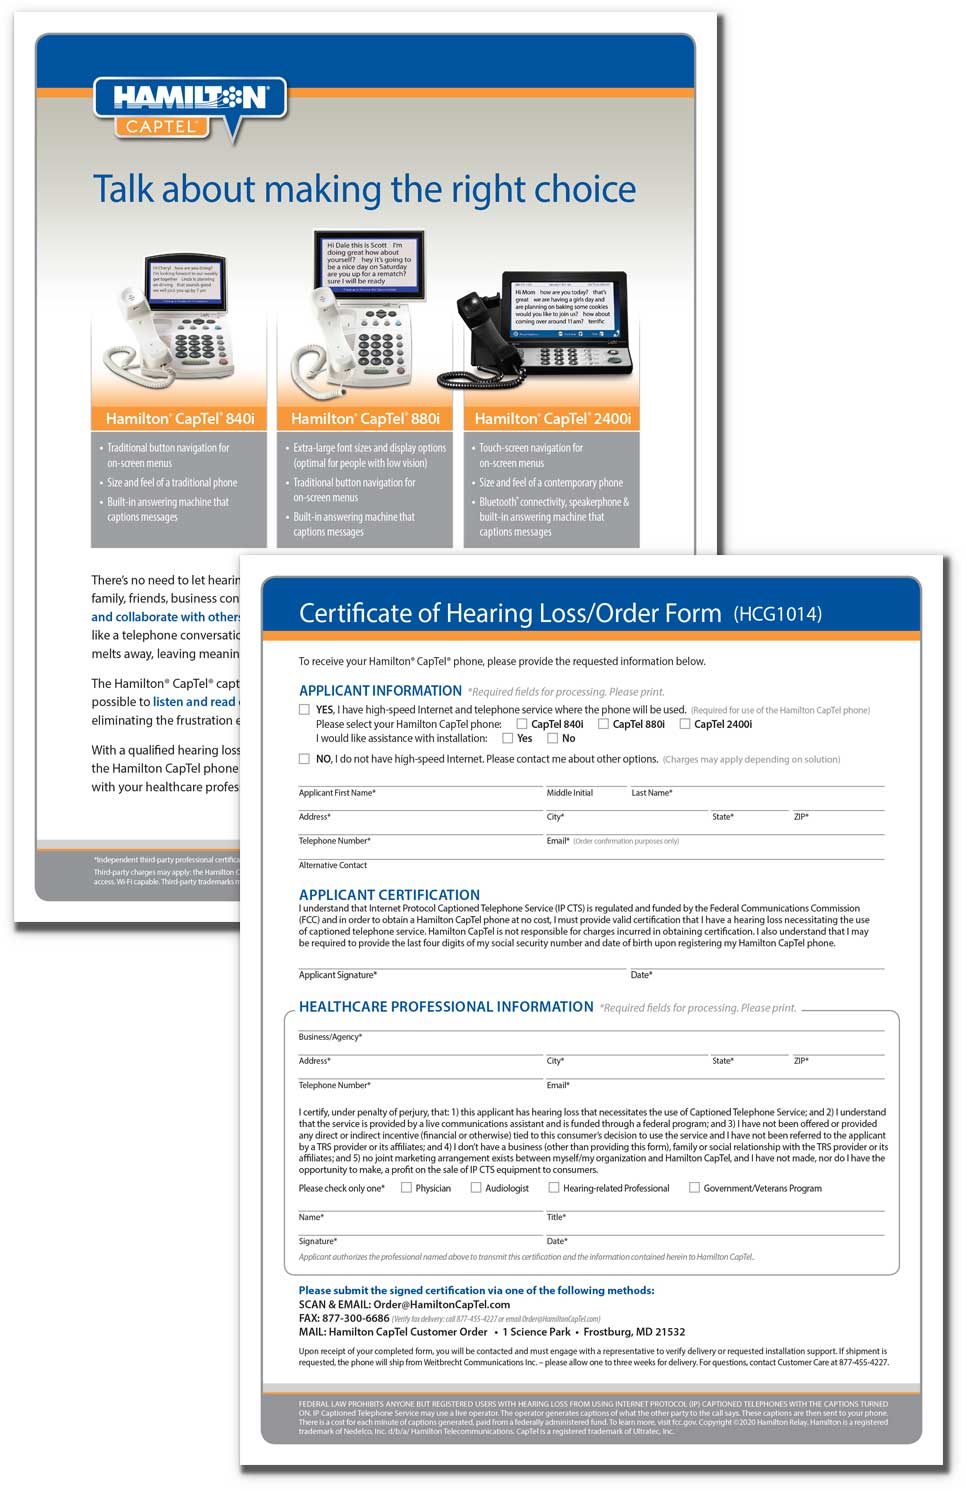 Thumbnail preview of certificate of hearing loss form, front and back